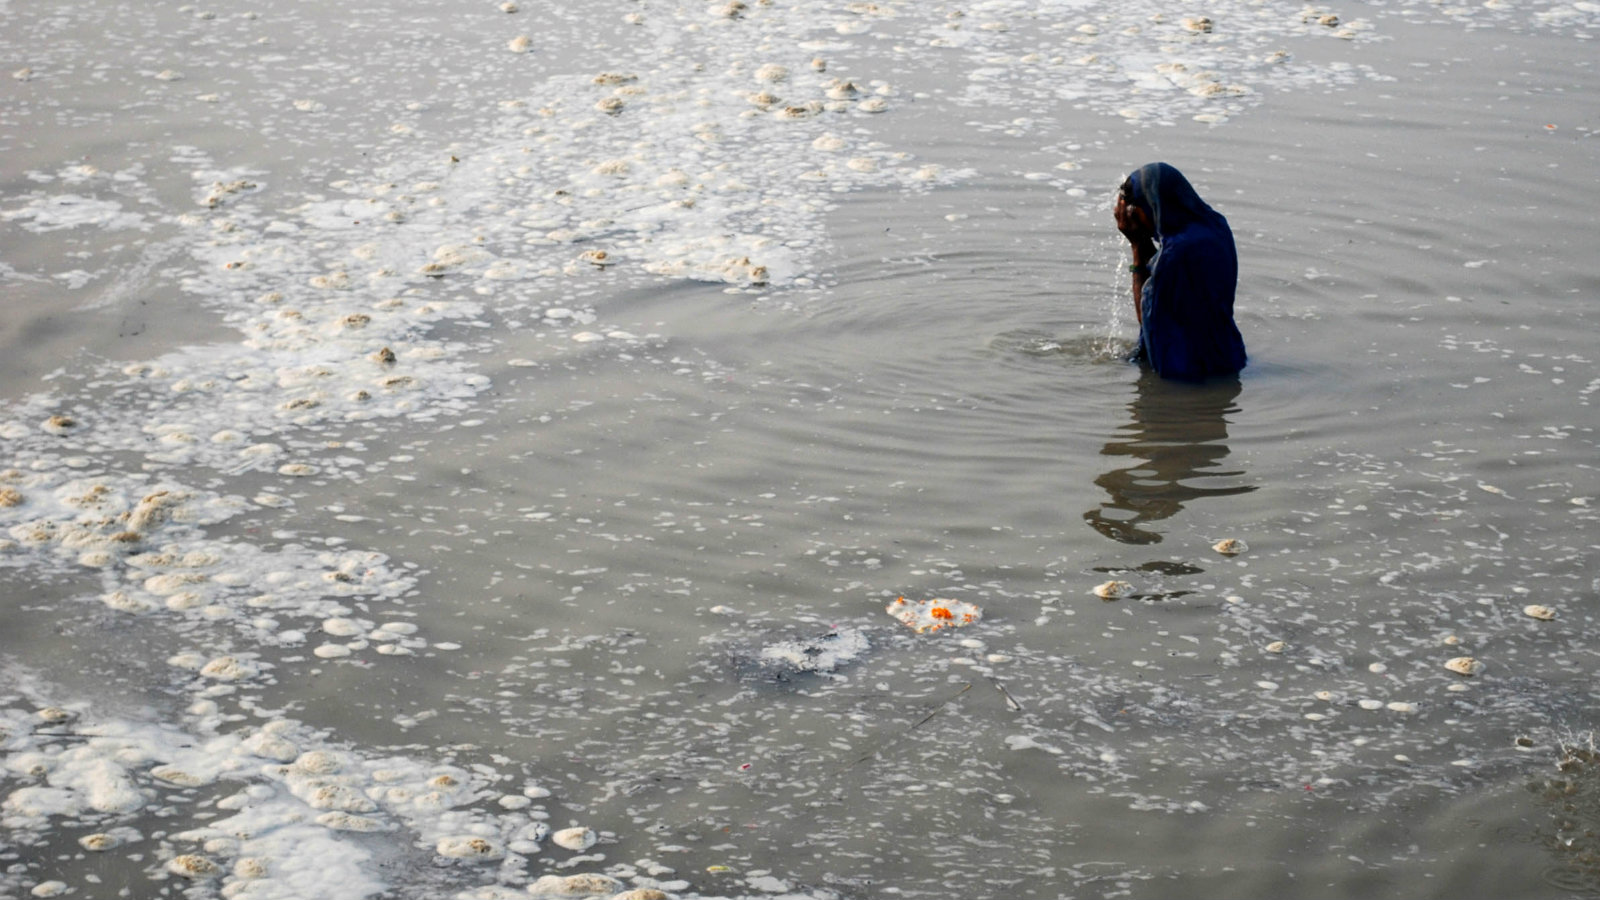 A Hindu woman devotee takes a holy dip in the polluted Sangam, confluence of three rivers, the Ganga, the Yamuna and mythical Saraswati, in the northern Indian city of Allahabad November 10, 2008. Industrial discharges, sewage, pesticides and the rotting remains of dead bodies have increased pollution levels in the Ganges over the years despite government promises to clean up India's most sacred river.